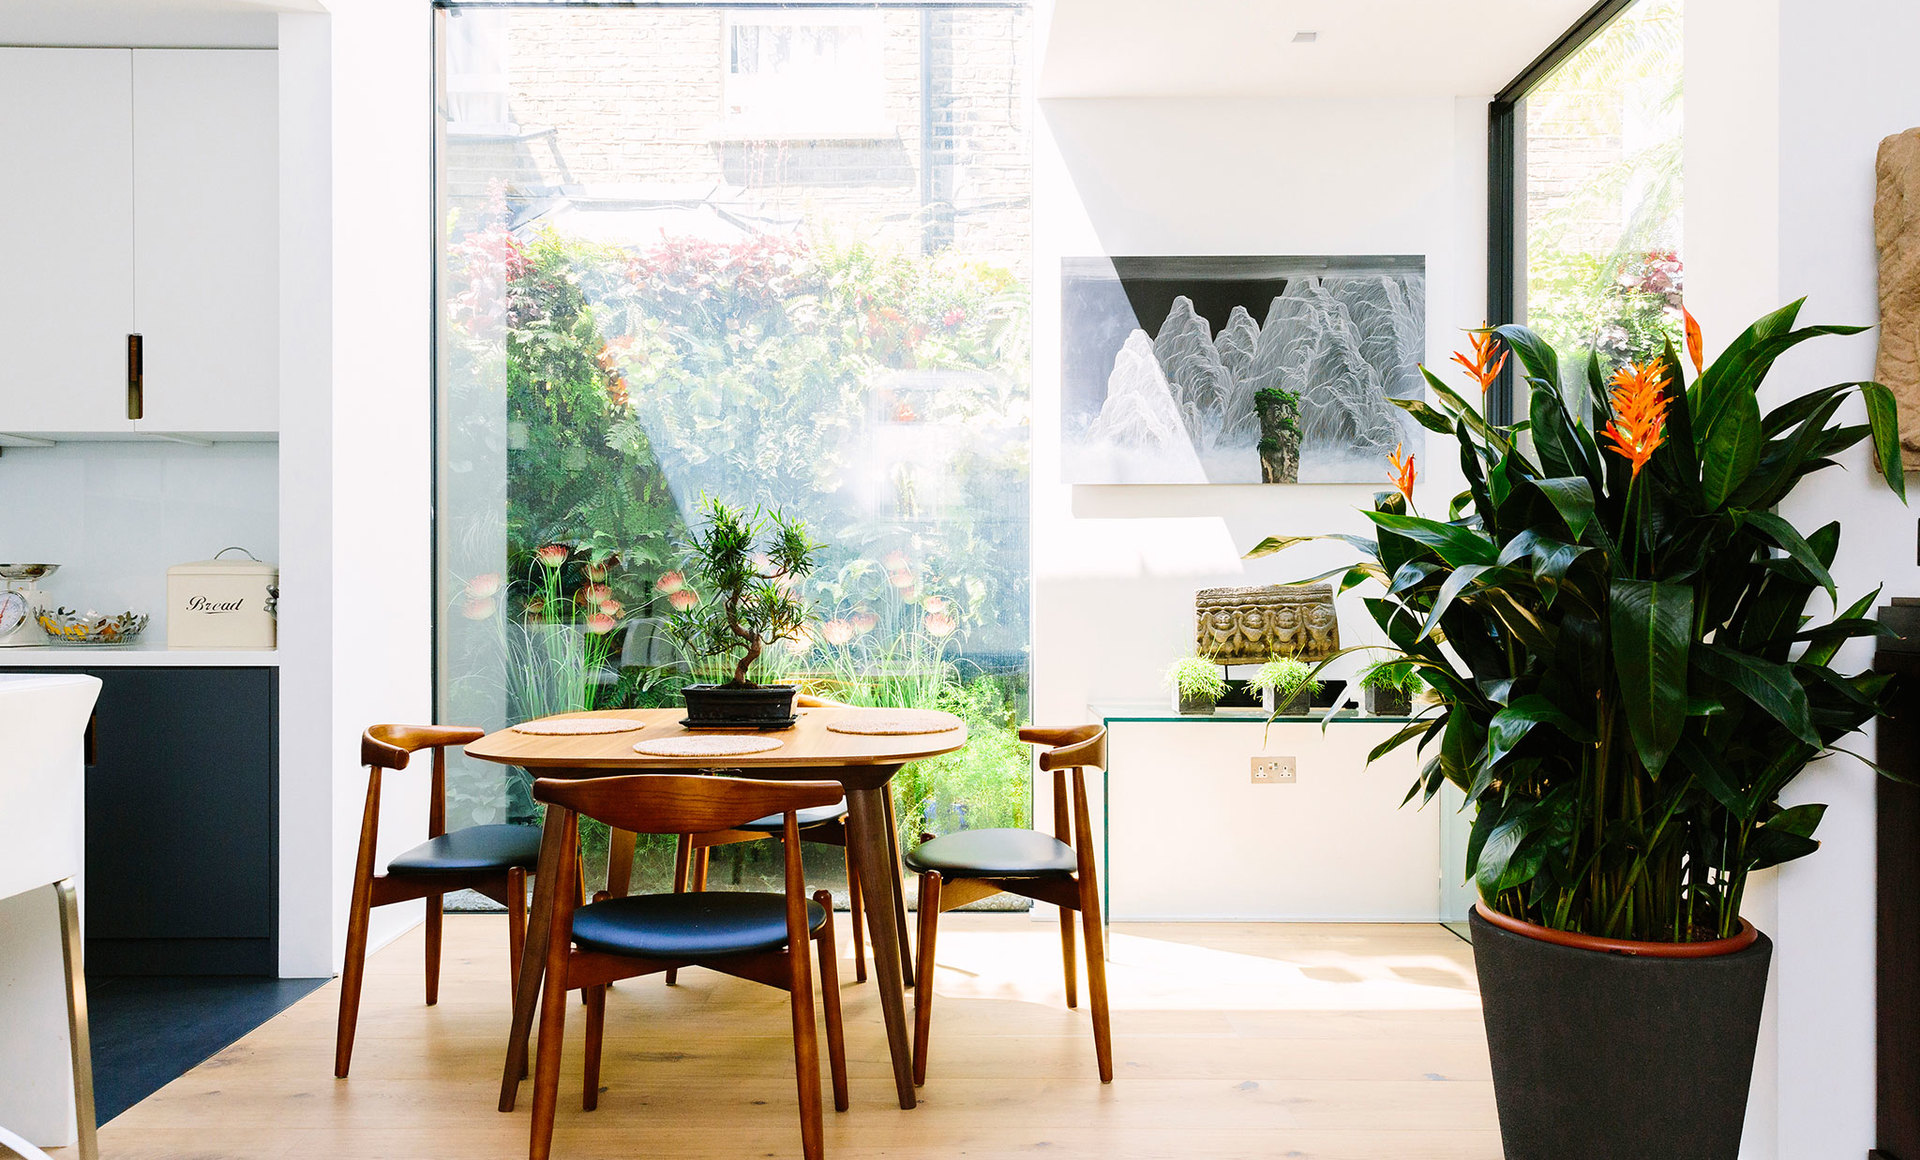 Light and bright dining room connecting the indoors and outdoors with large glazing and indoor greenery